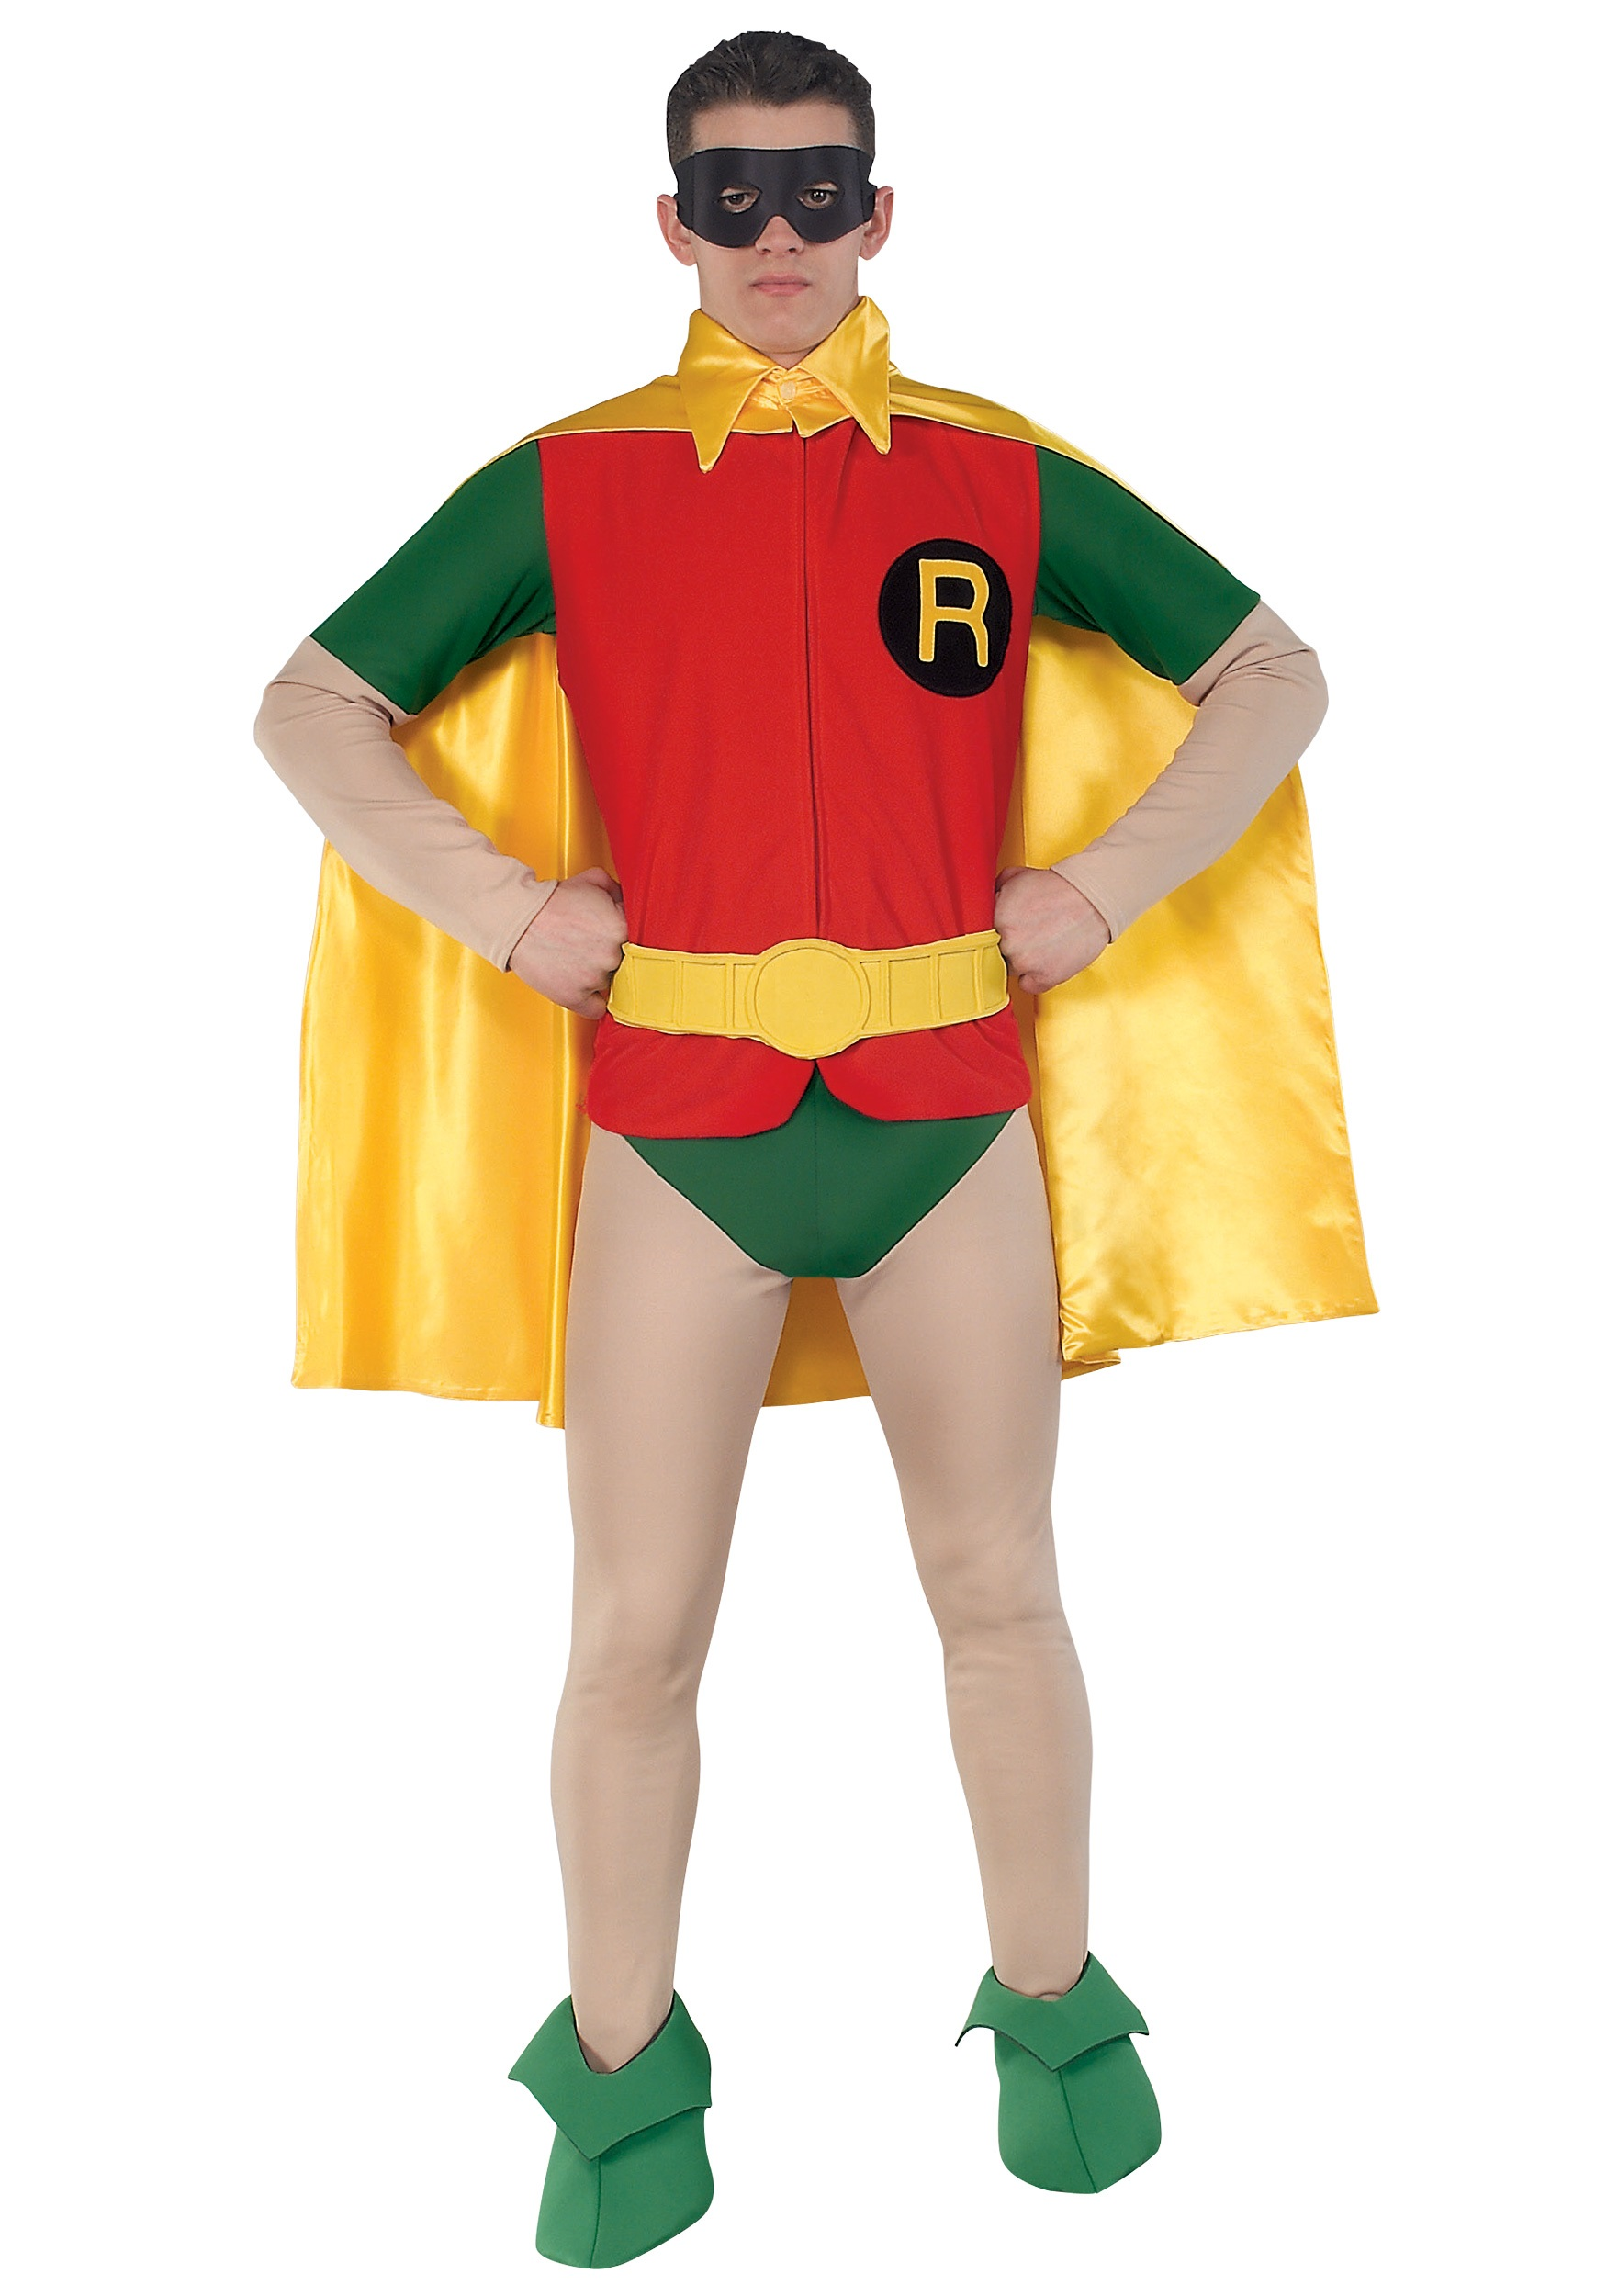 Classic Robin Costume Replica  sc 1 st  Halloween Costume Ideas & Classic Robin Costume Replica - Authentic Batman Costumes